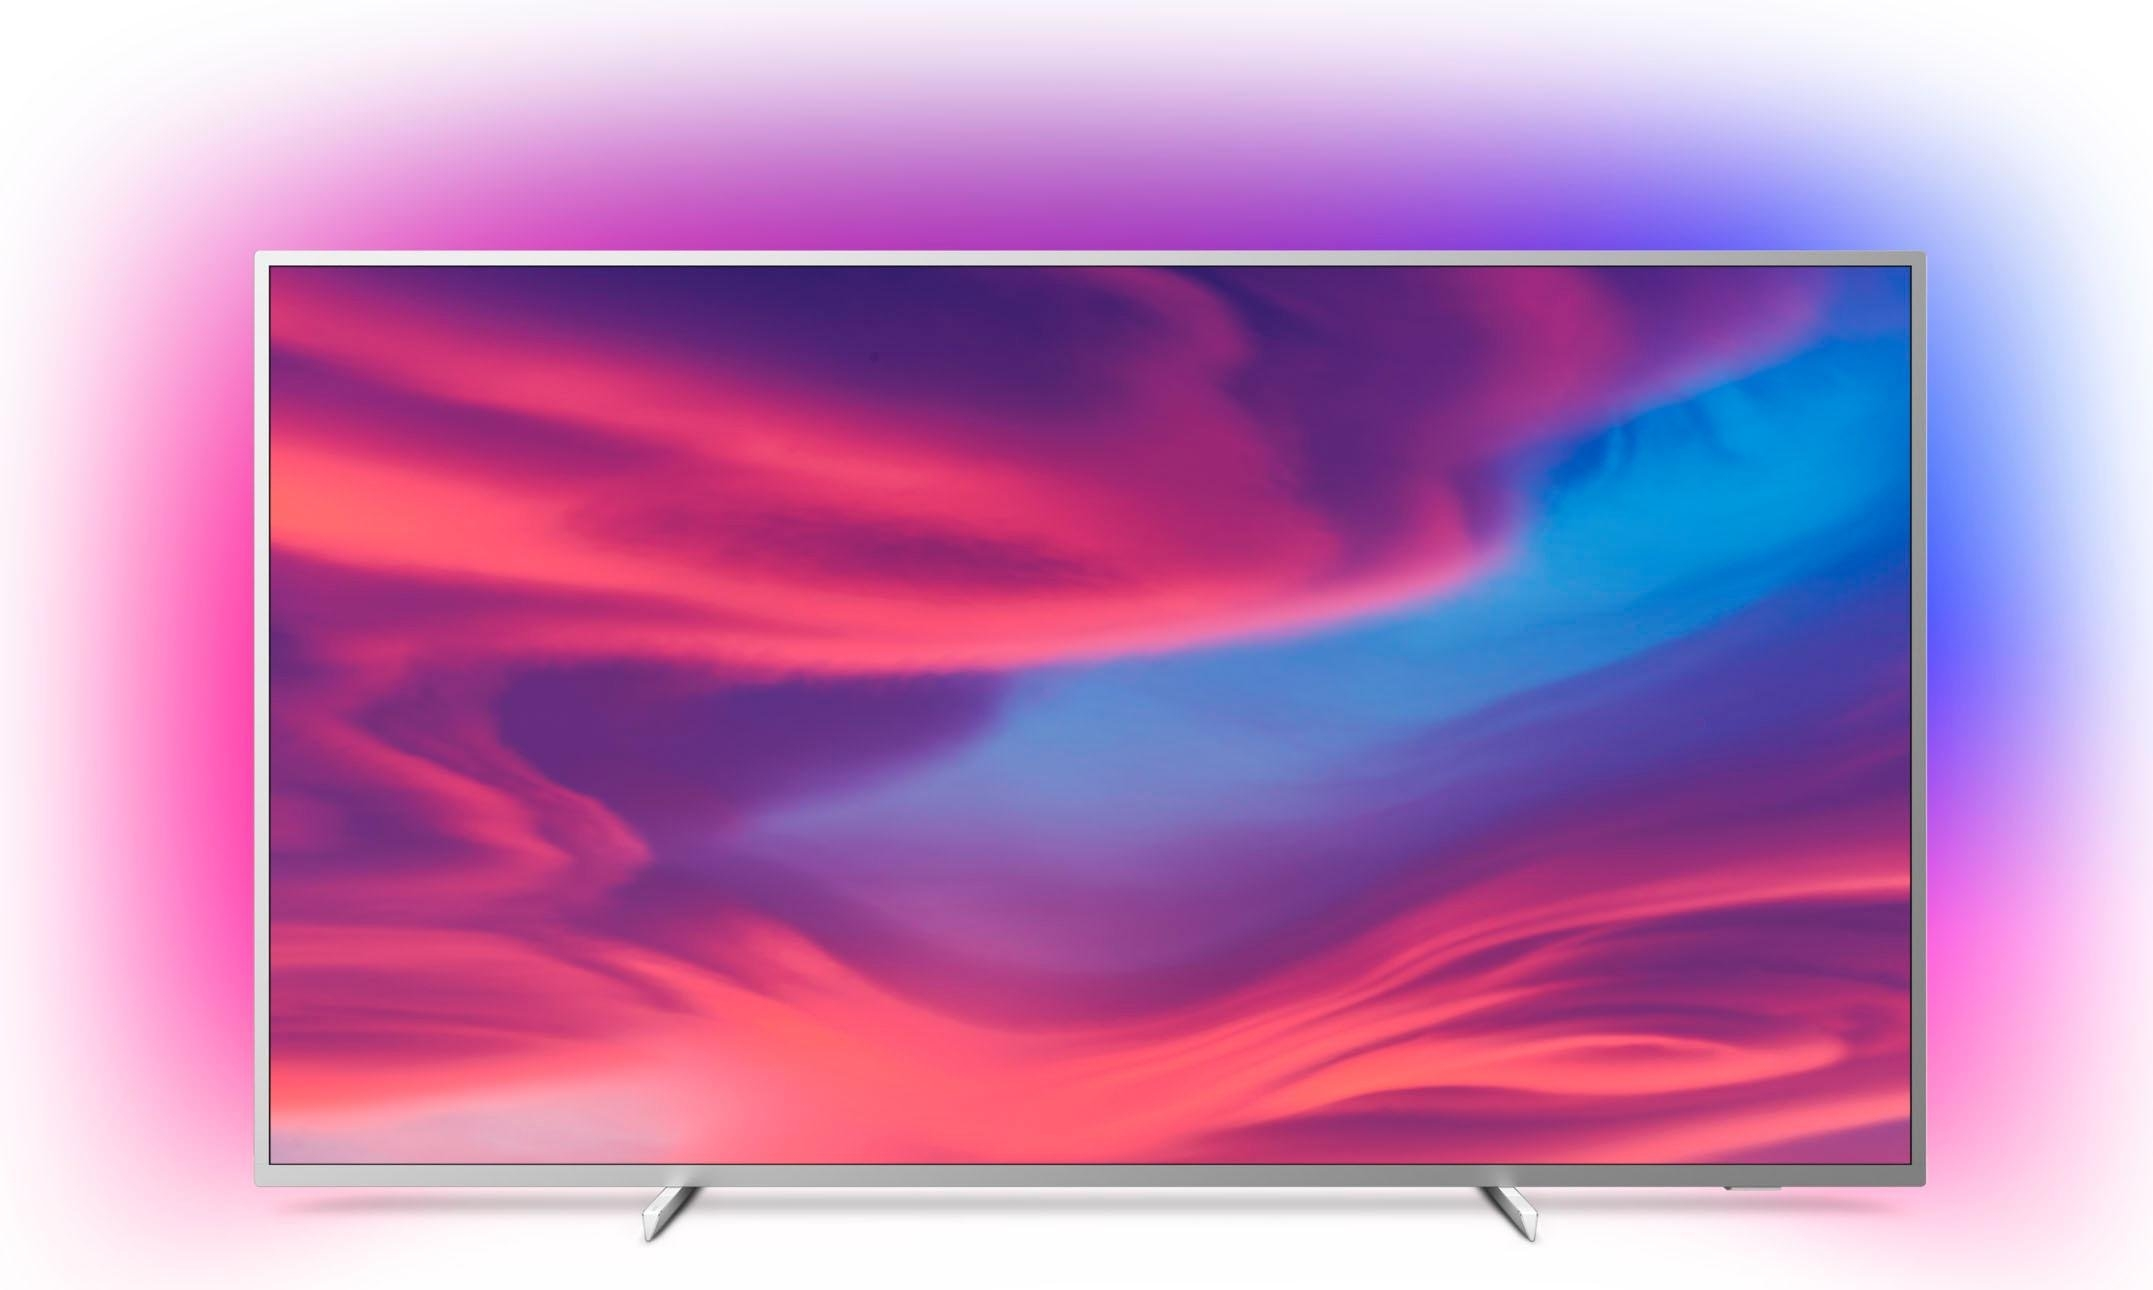 Philips 'The One' 70PUS7304/12 led-tv (178 cm / 70 inch), 4K Ultra HD, smart-tv bestellen: 30 dagen bedenktijd